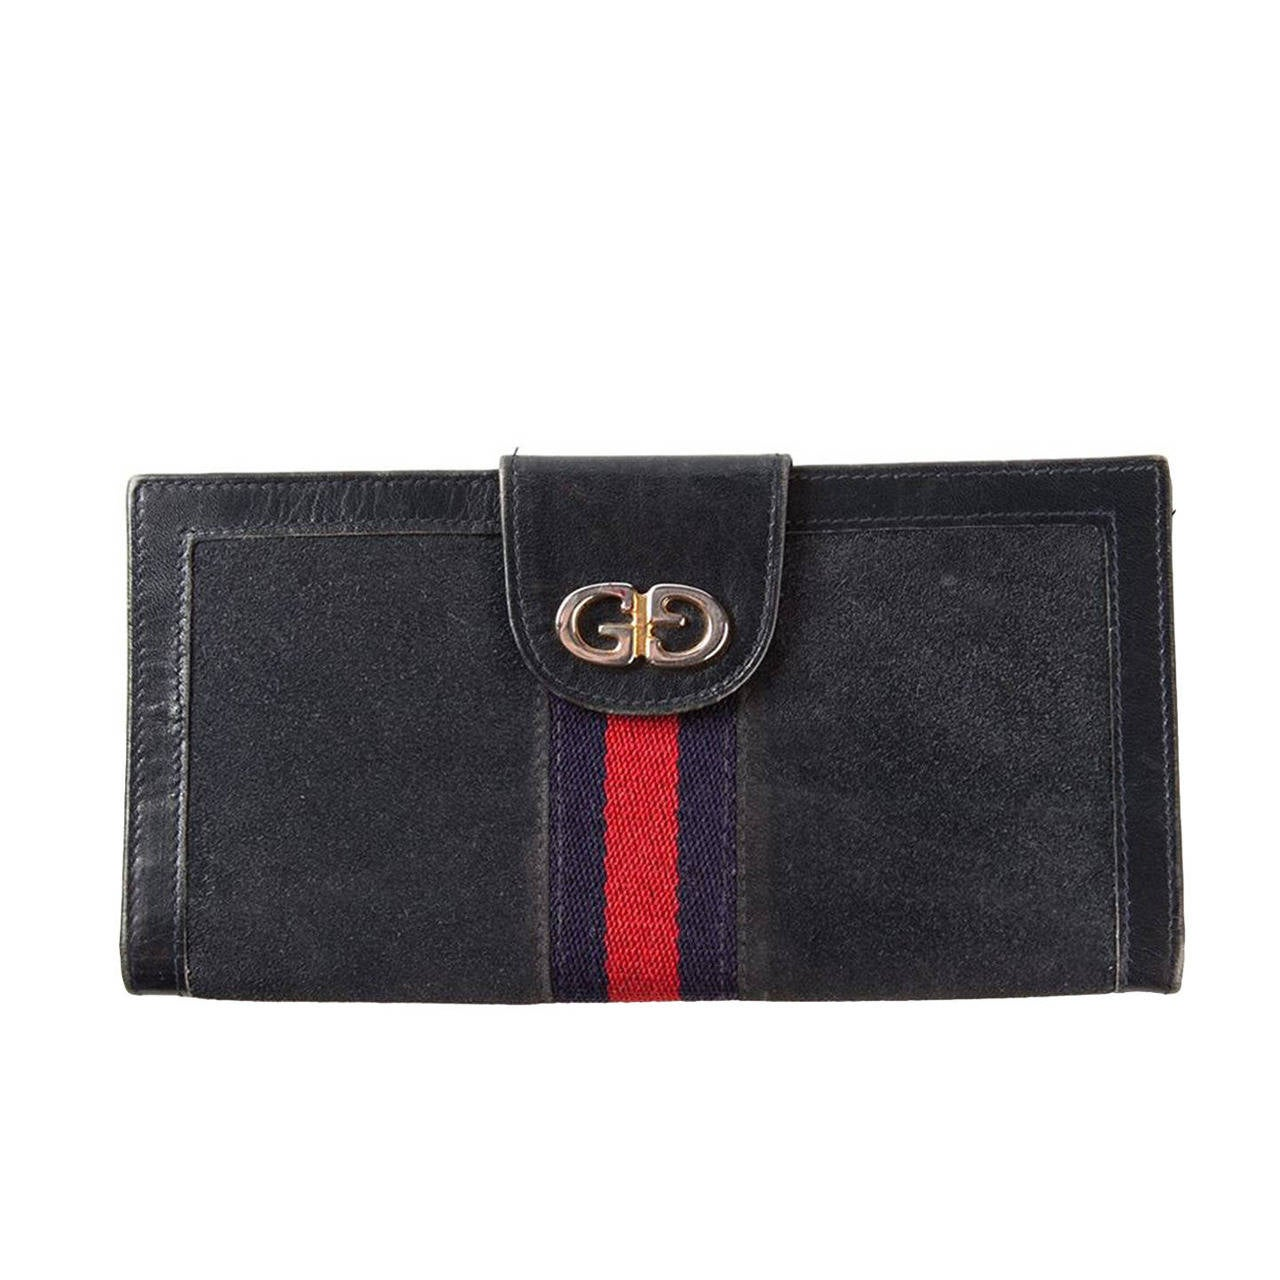 1970s Gucci Logo Purse For Sale At 1stdibs